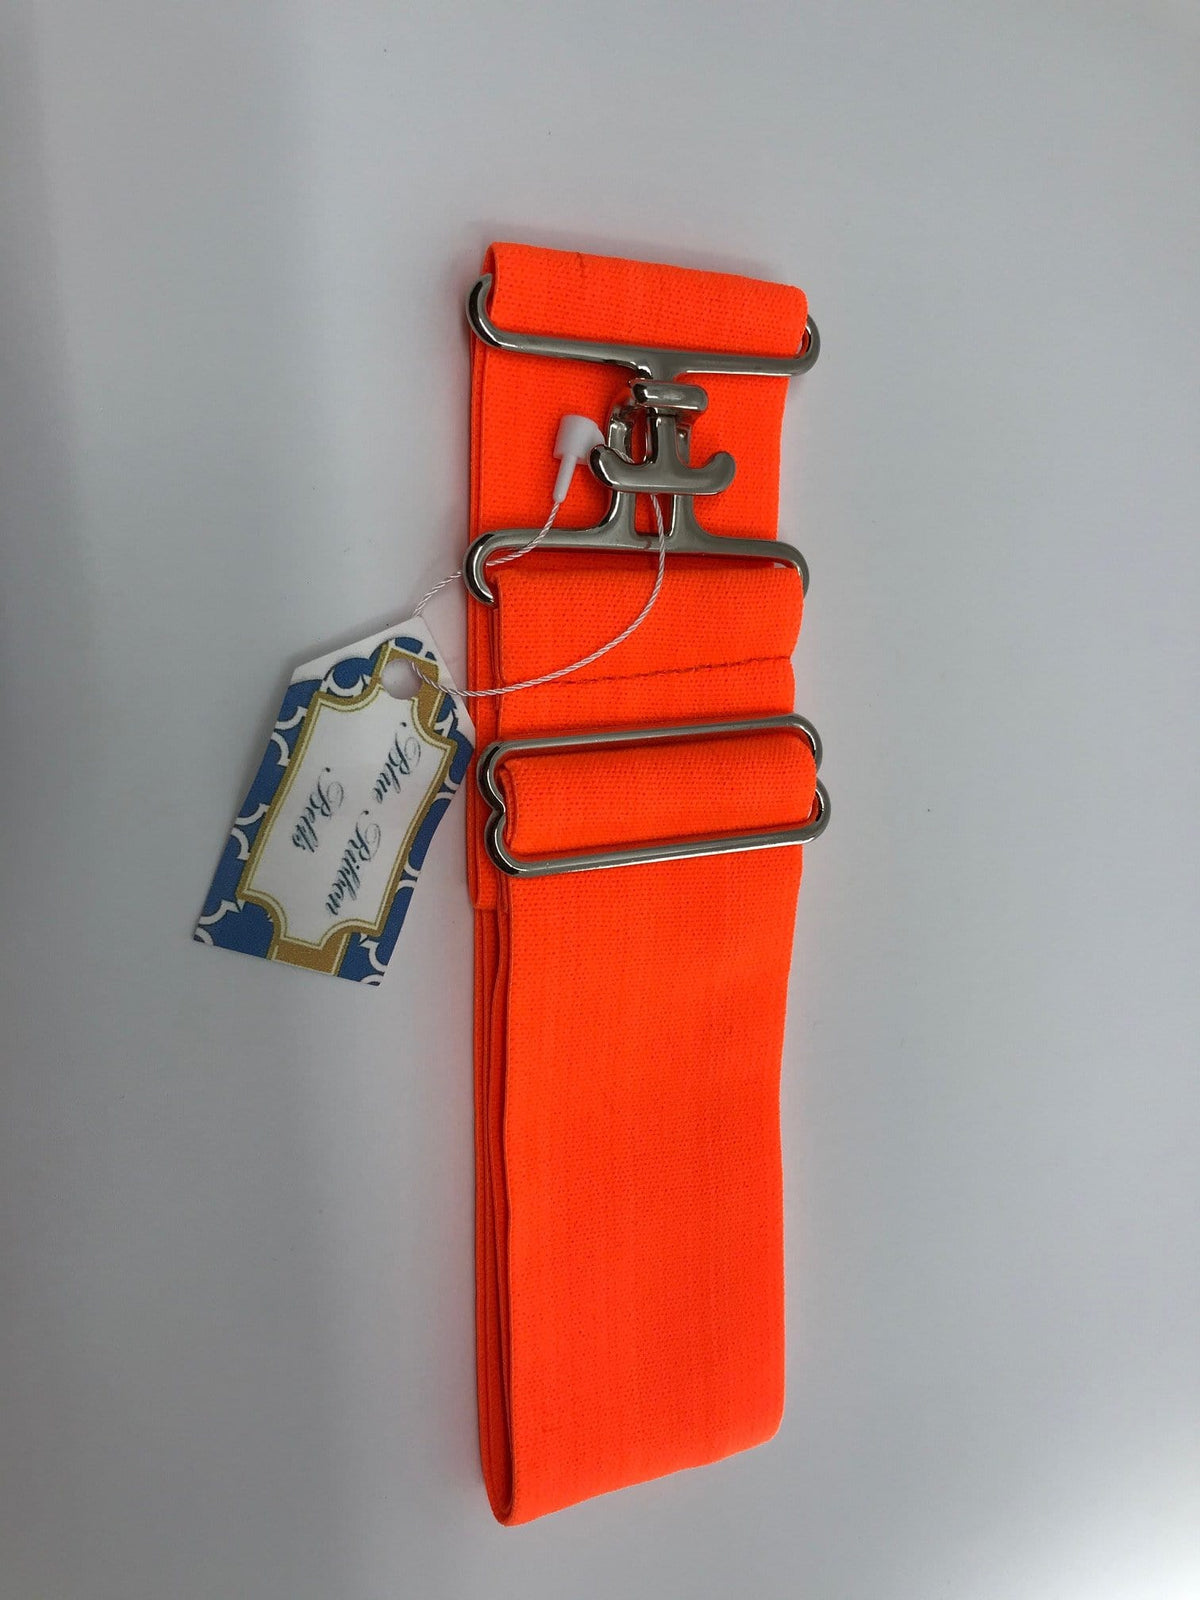 Blue Ribbon Belts Belt Bright Orange Blue Ribbon Belts - 2 Inch equestrian team apparel online tack store mobile tack store custom farm apparel custom show stable clothing equestrian lifestyle horse show clothing riding clothes horses equestrian tack store